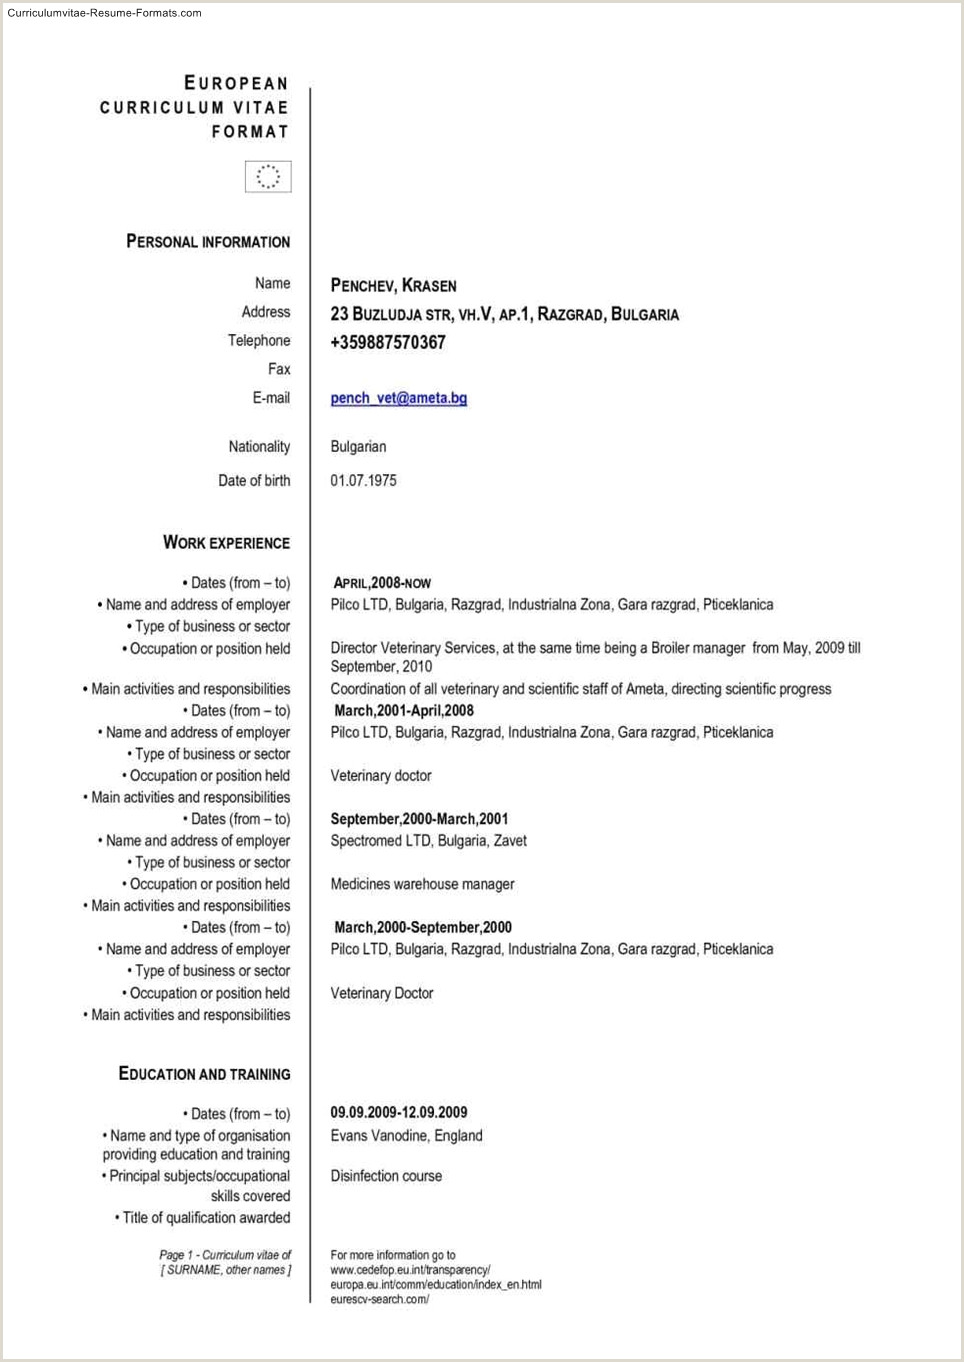 Europass Cv Format Free Download 25 European Cv Format